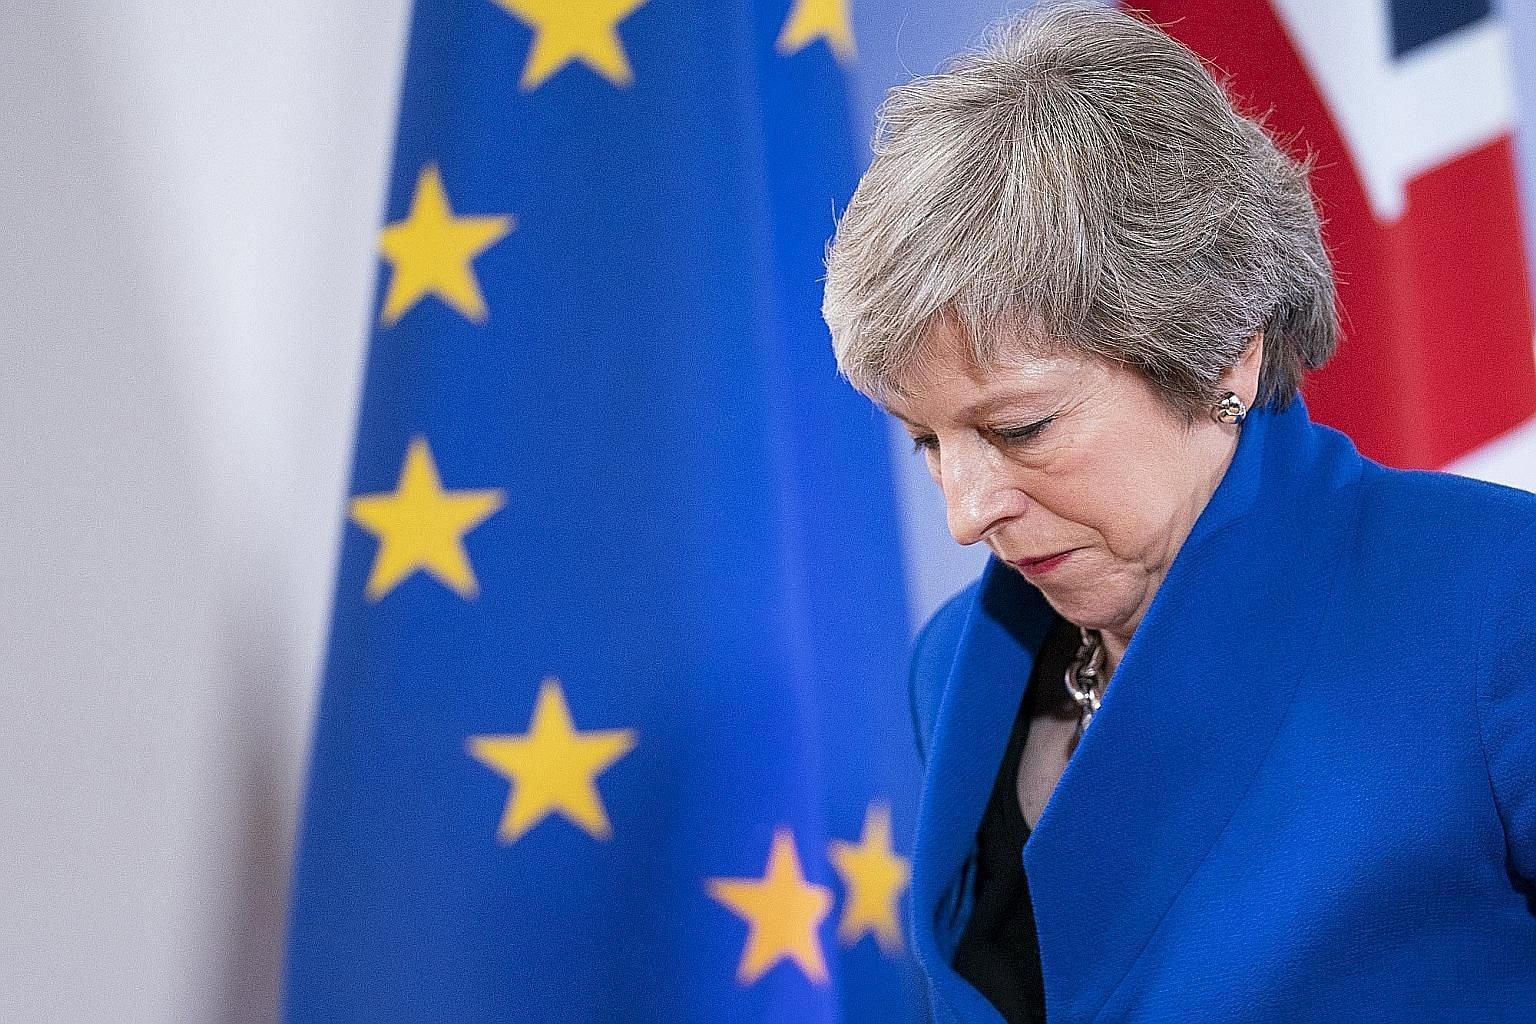 British Prime Minister Theresa May in Brussels on Sunday. The EU has warned that the agreed Brexit deal is the only deal possible.